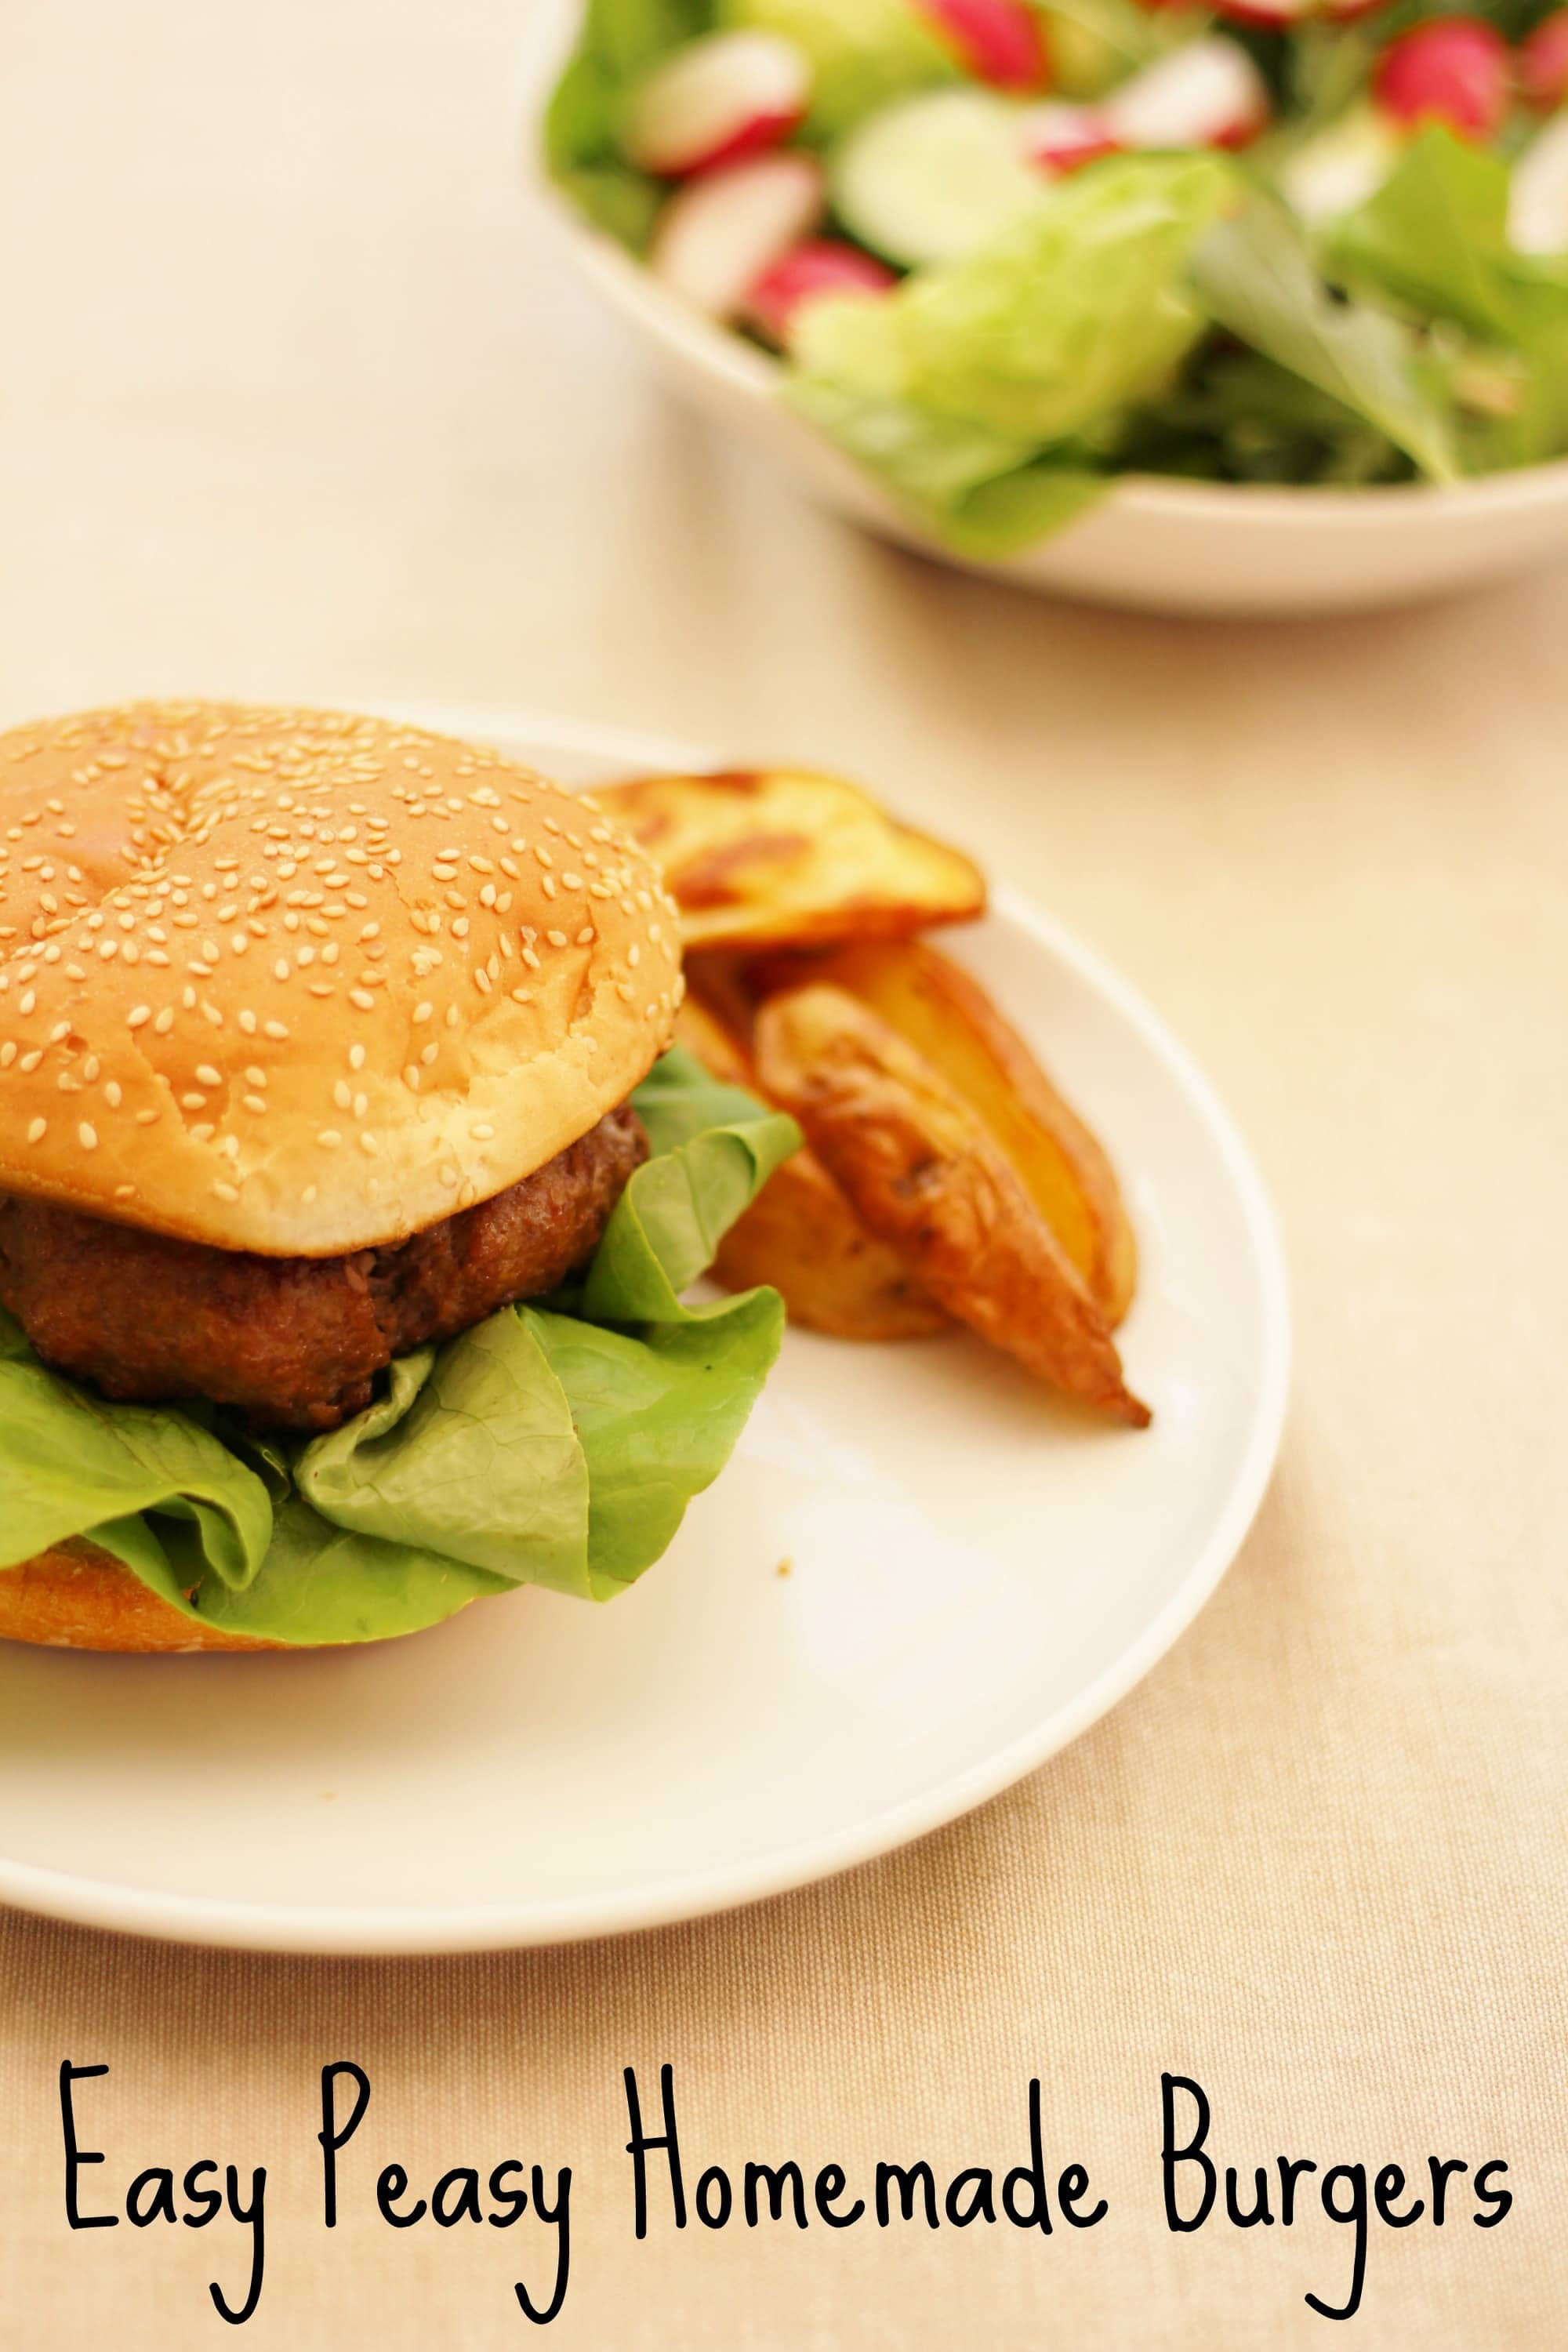 Easy Peasy And Fun: Easy Peasy Homemade Burgers